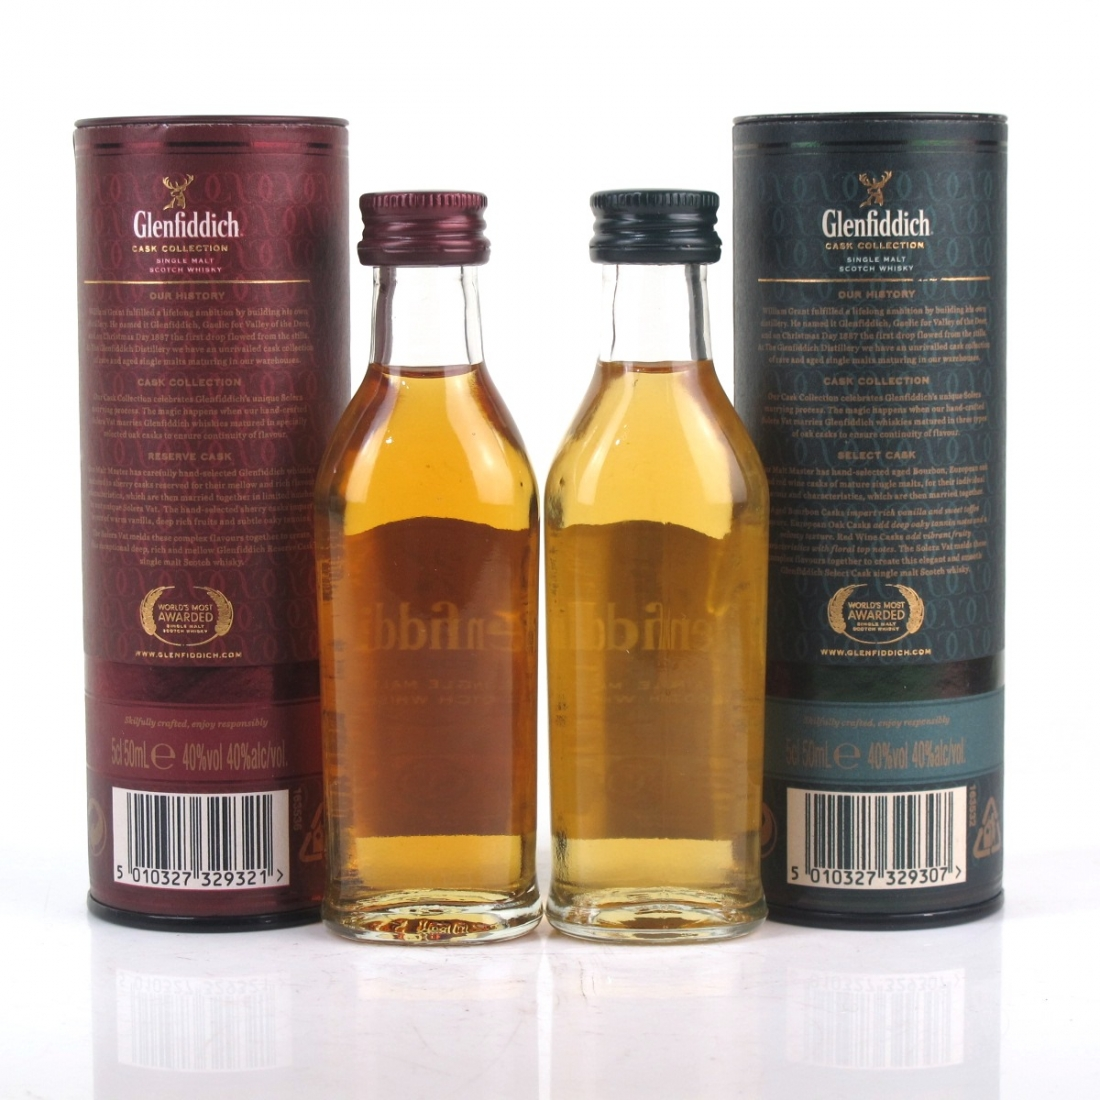 Glenfiddich Miniature Selection 2 x 5cl